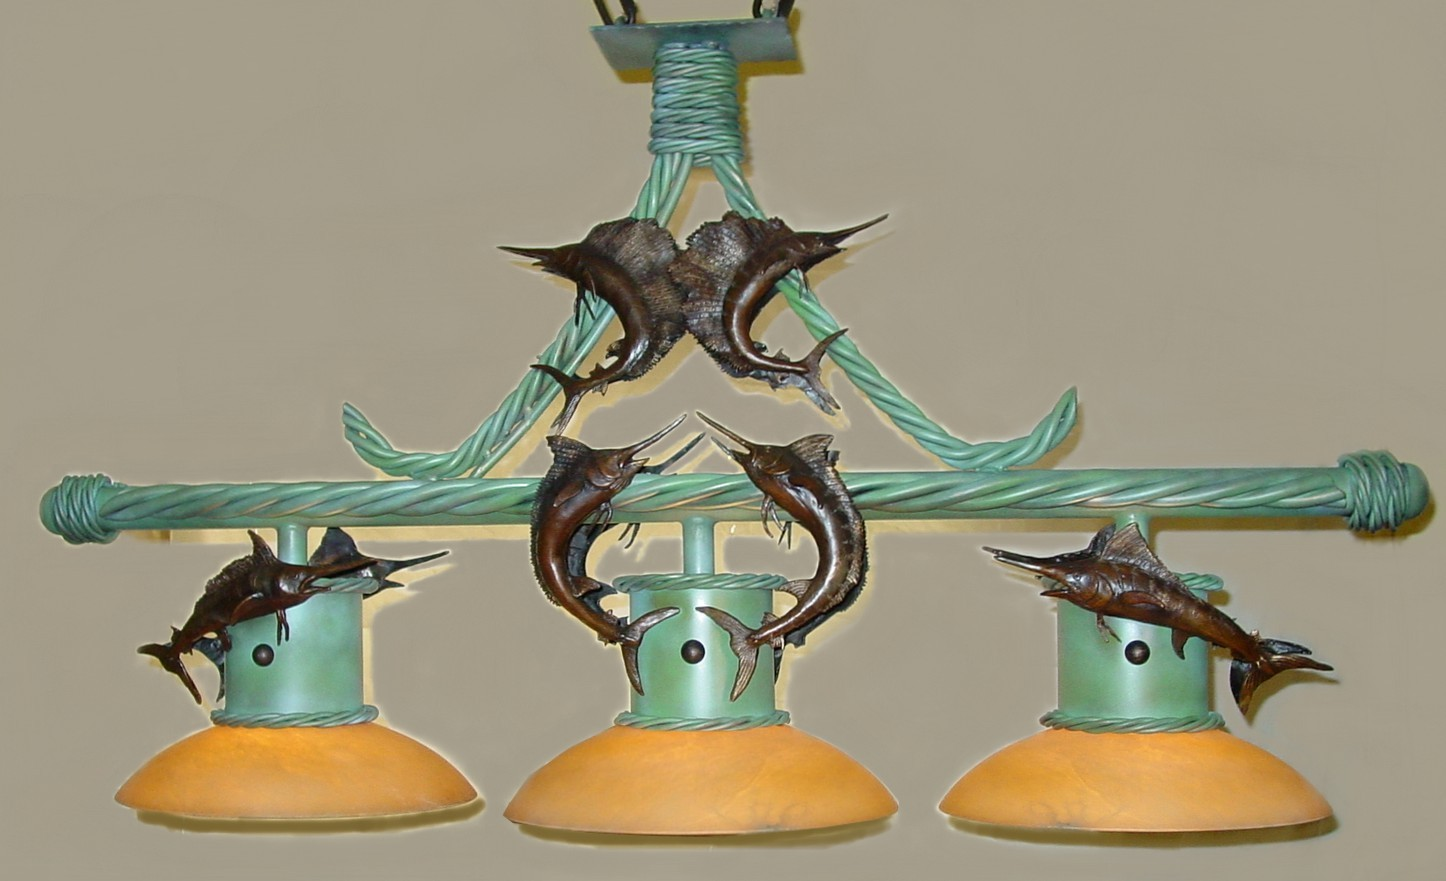 Ocean Lighting Fixtures